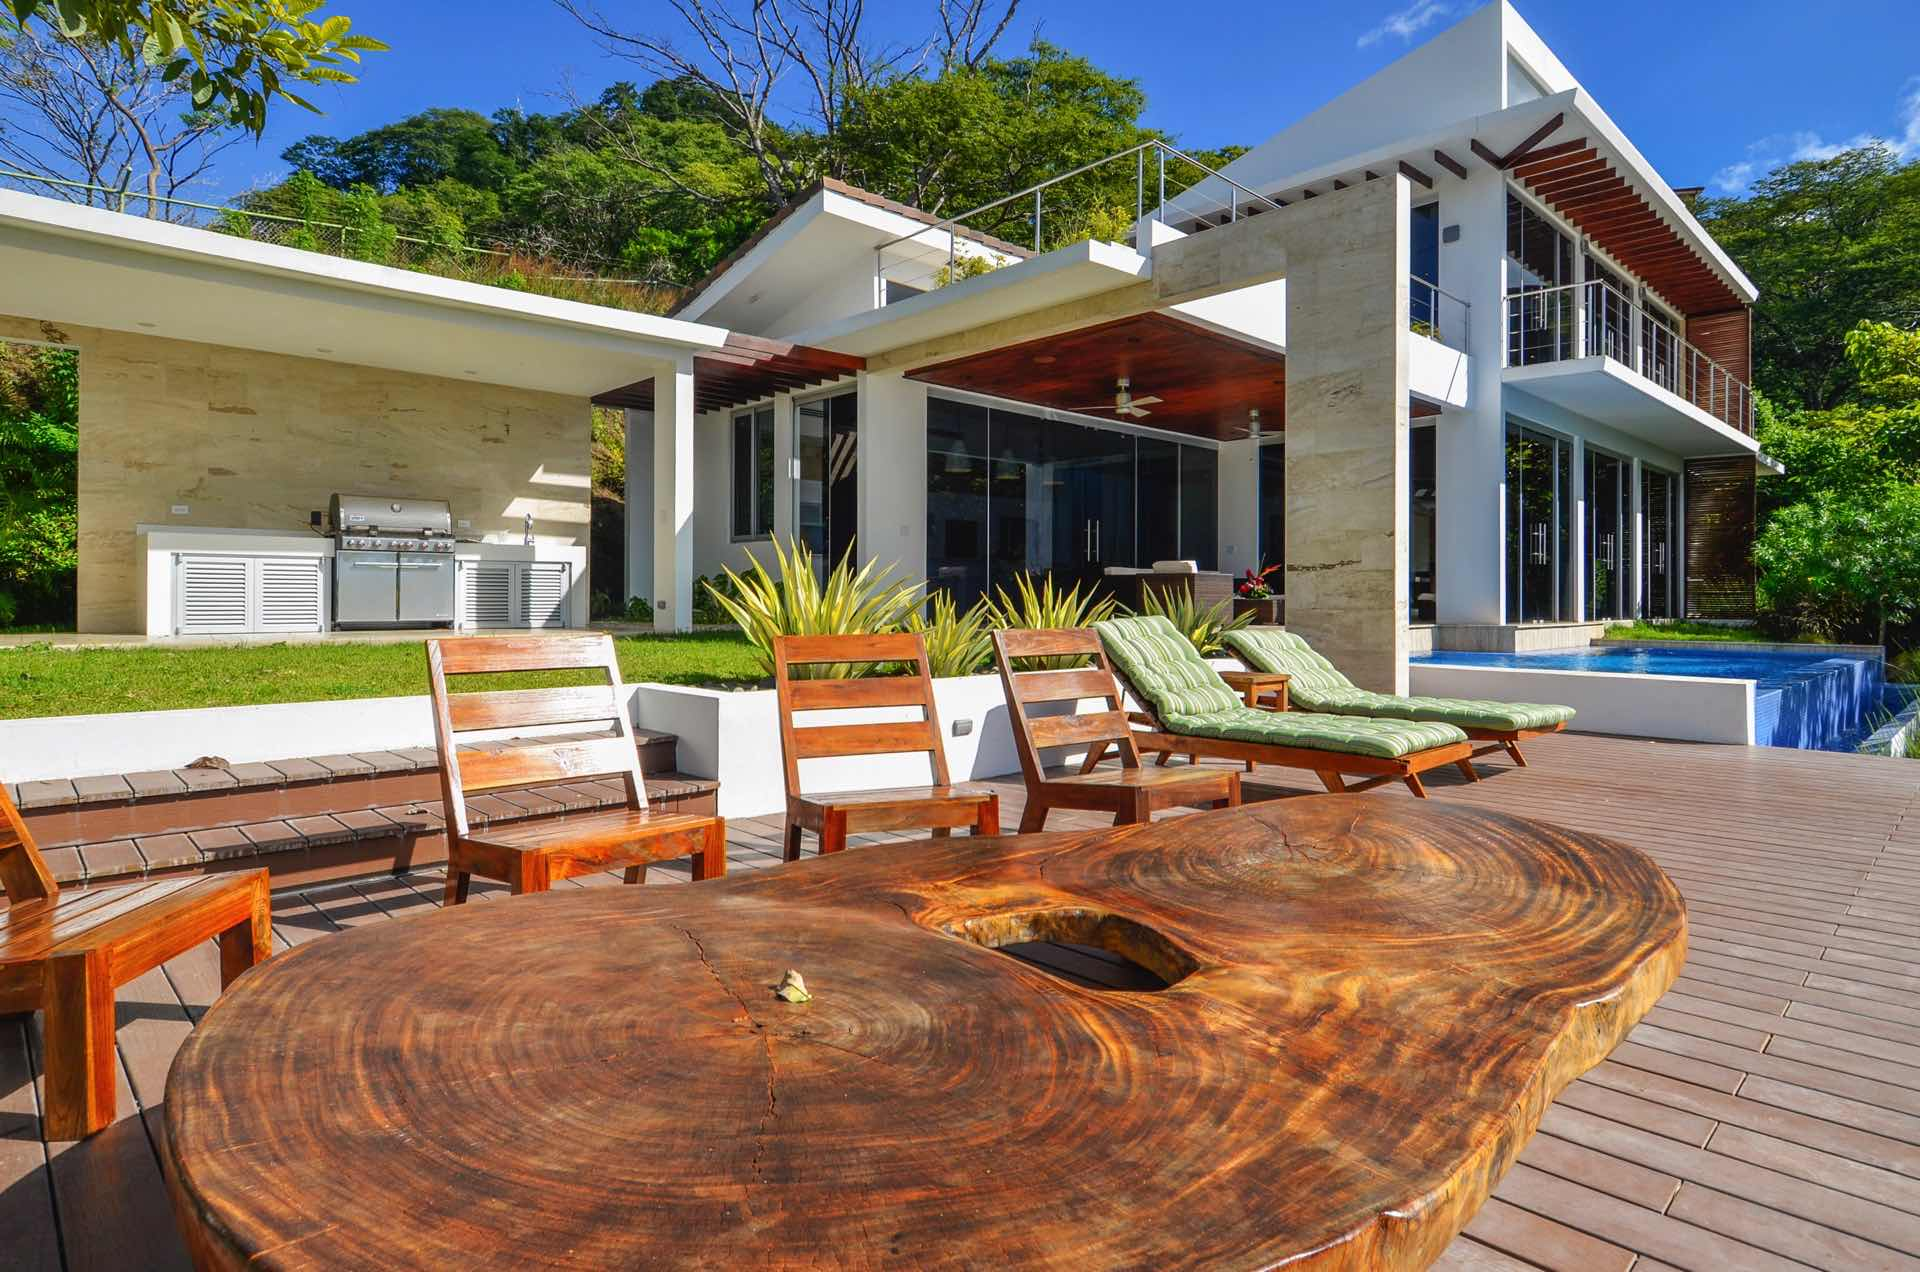 Wooden sundeck and natural table